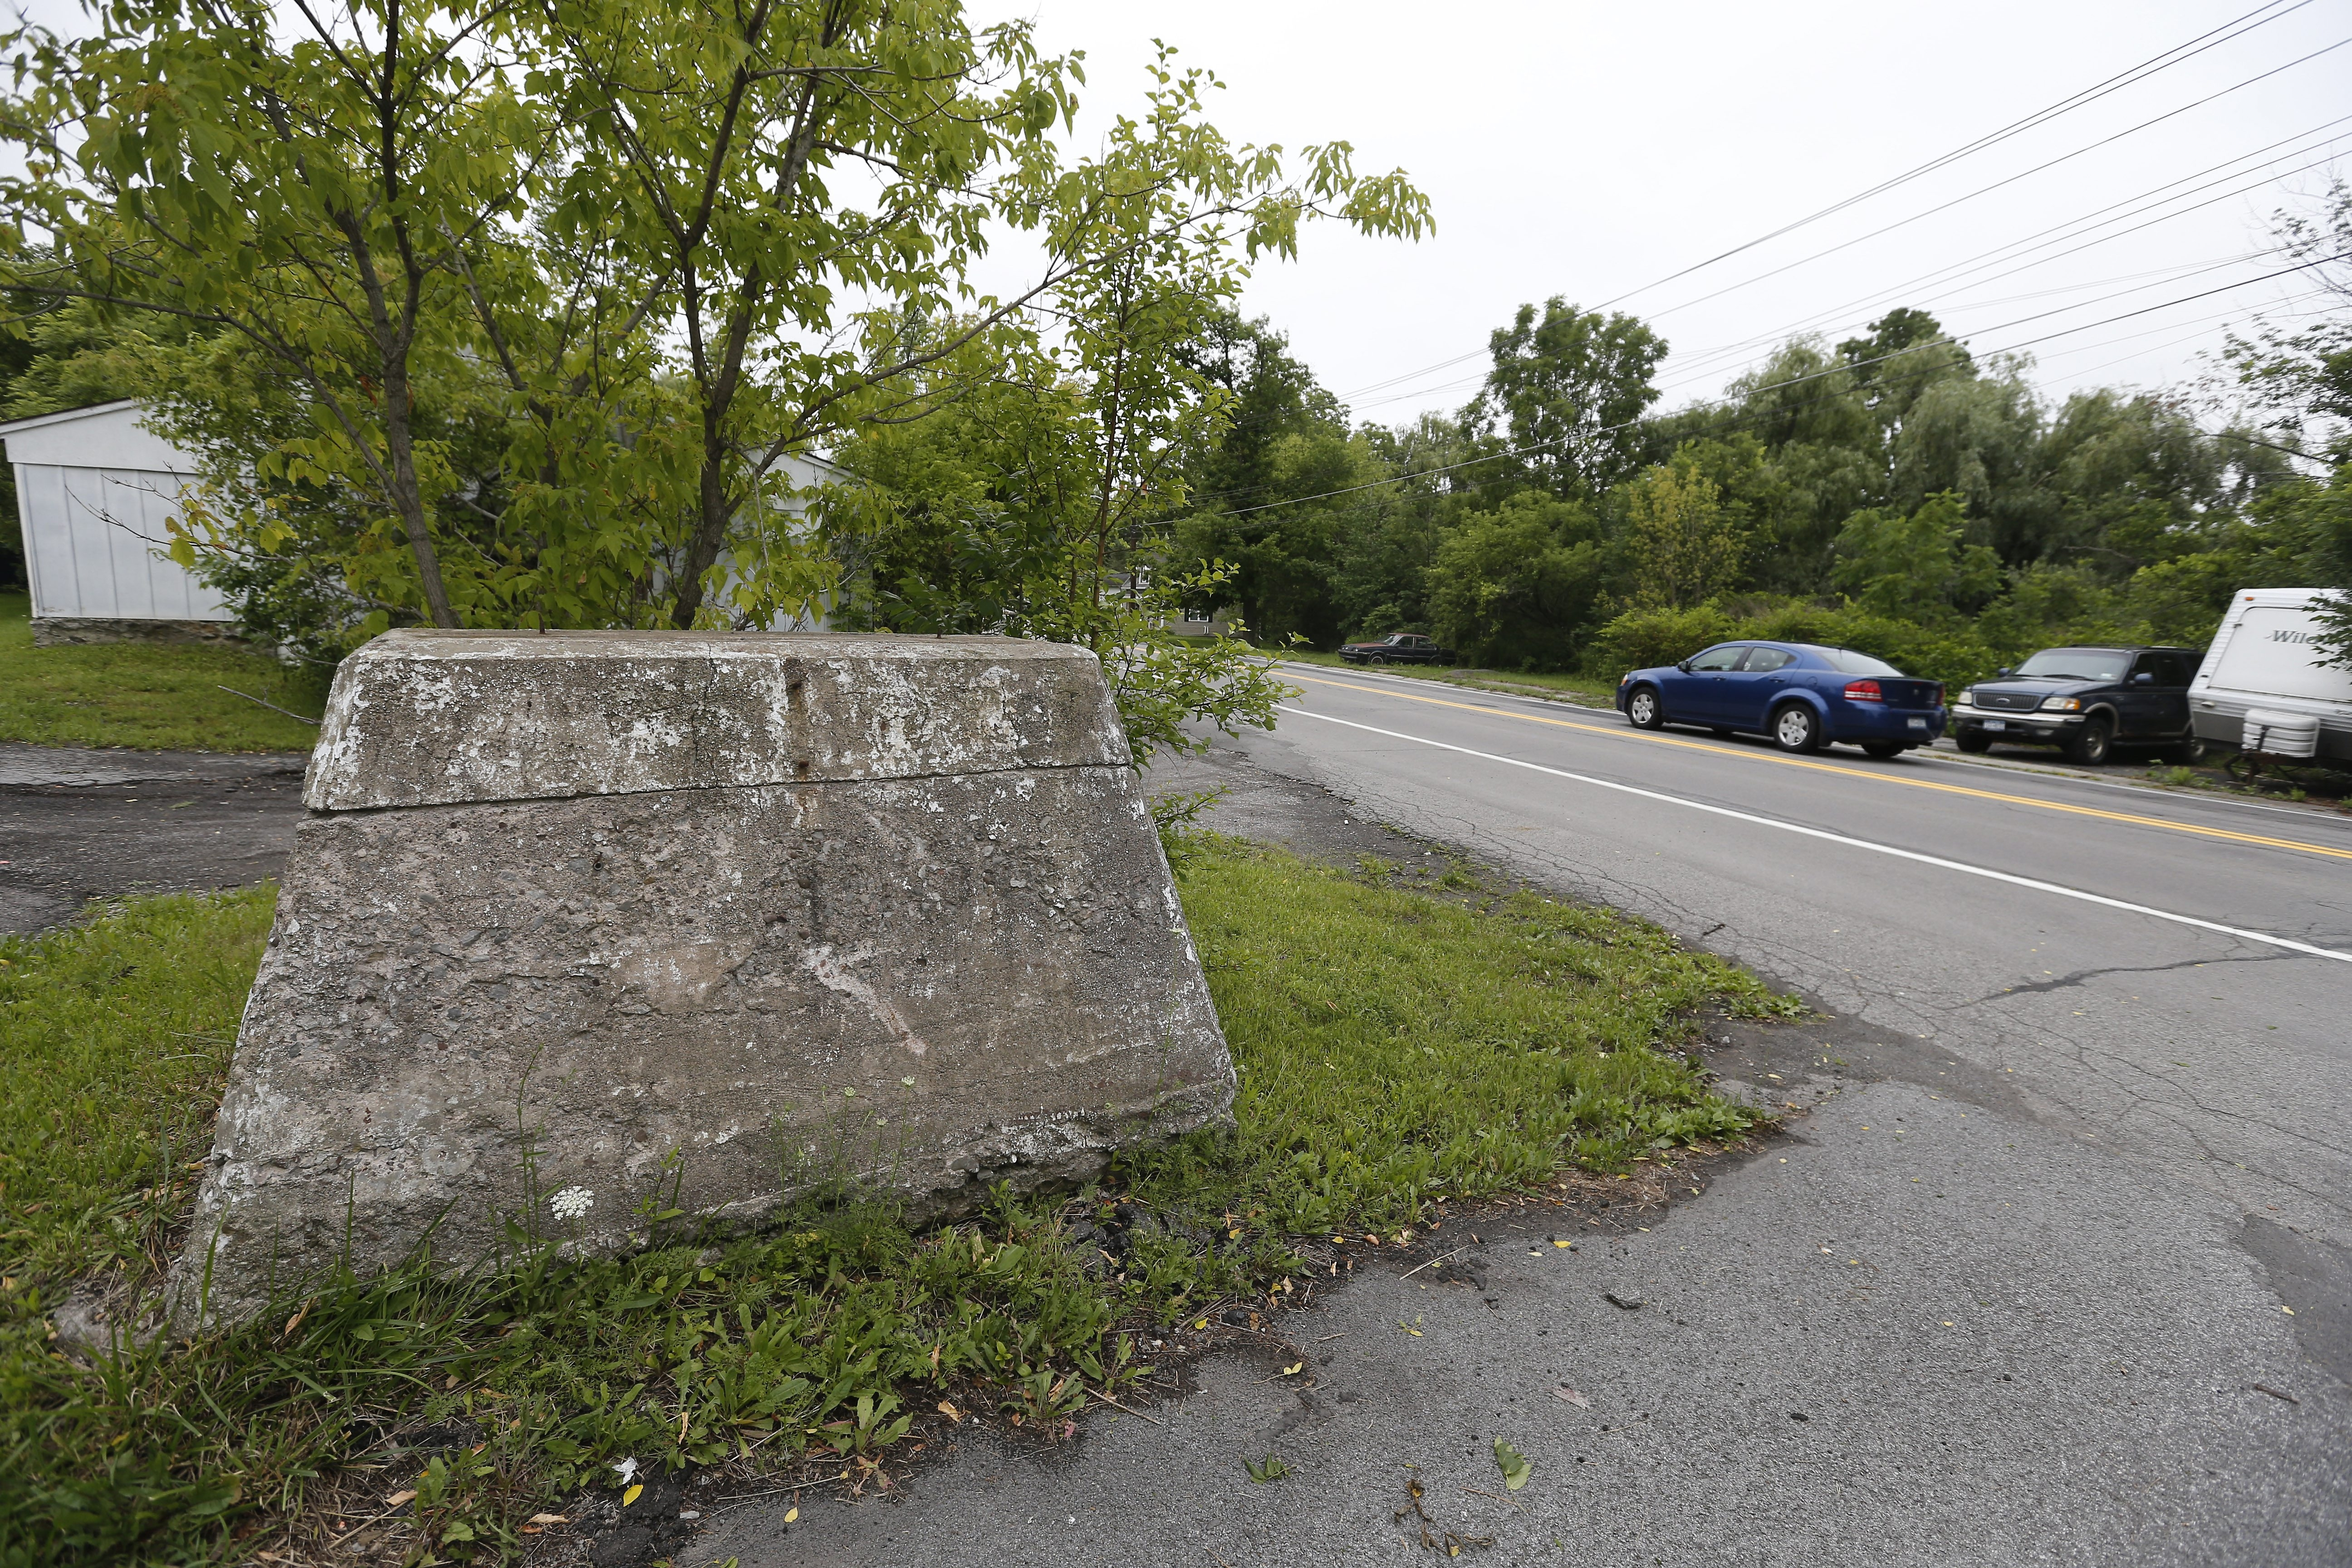 This is the stone foundation where the owl once was perched near the Rapids Fire Company in Lockport.